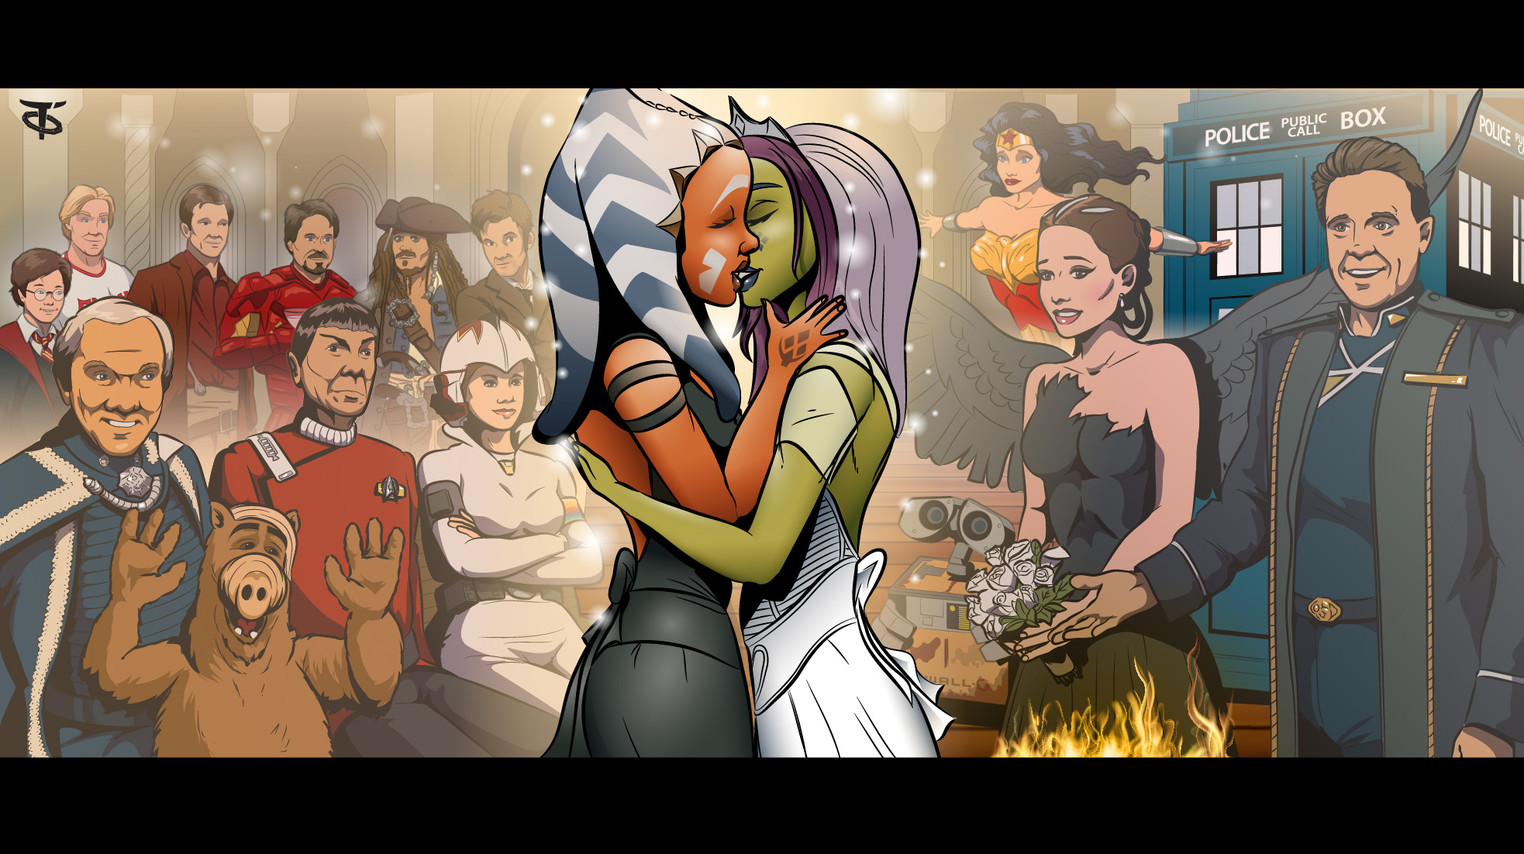 Star wars the clone wars sex hentai xxx pictures